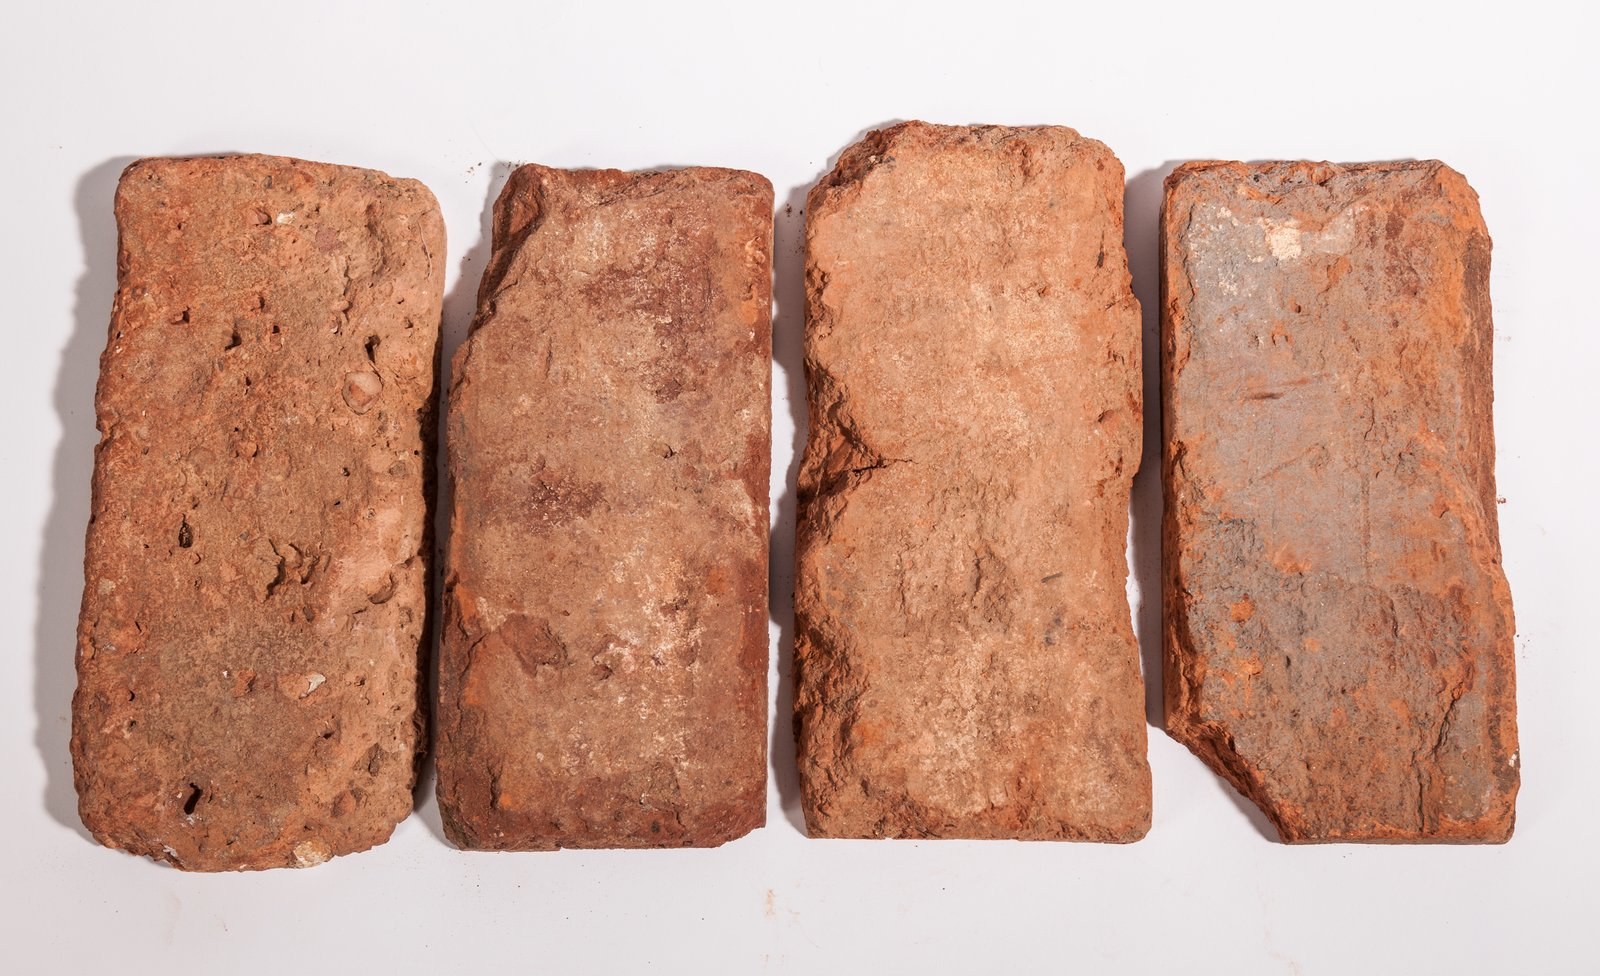 Vintage Bricks thin brick tiles - genuine reclaimed from salvaged bricks www.VintageBricks.com  Photo 5 of 10 in Revealing the Pros and Cons of Exposed Brick and How to Take Care of It from Thin Brick Tiles by Vintage Bricks